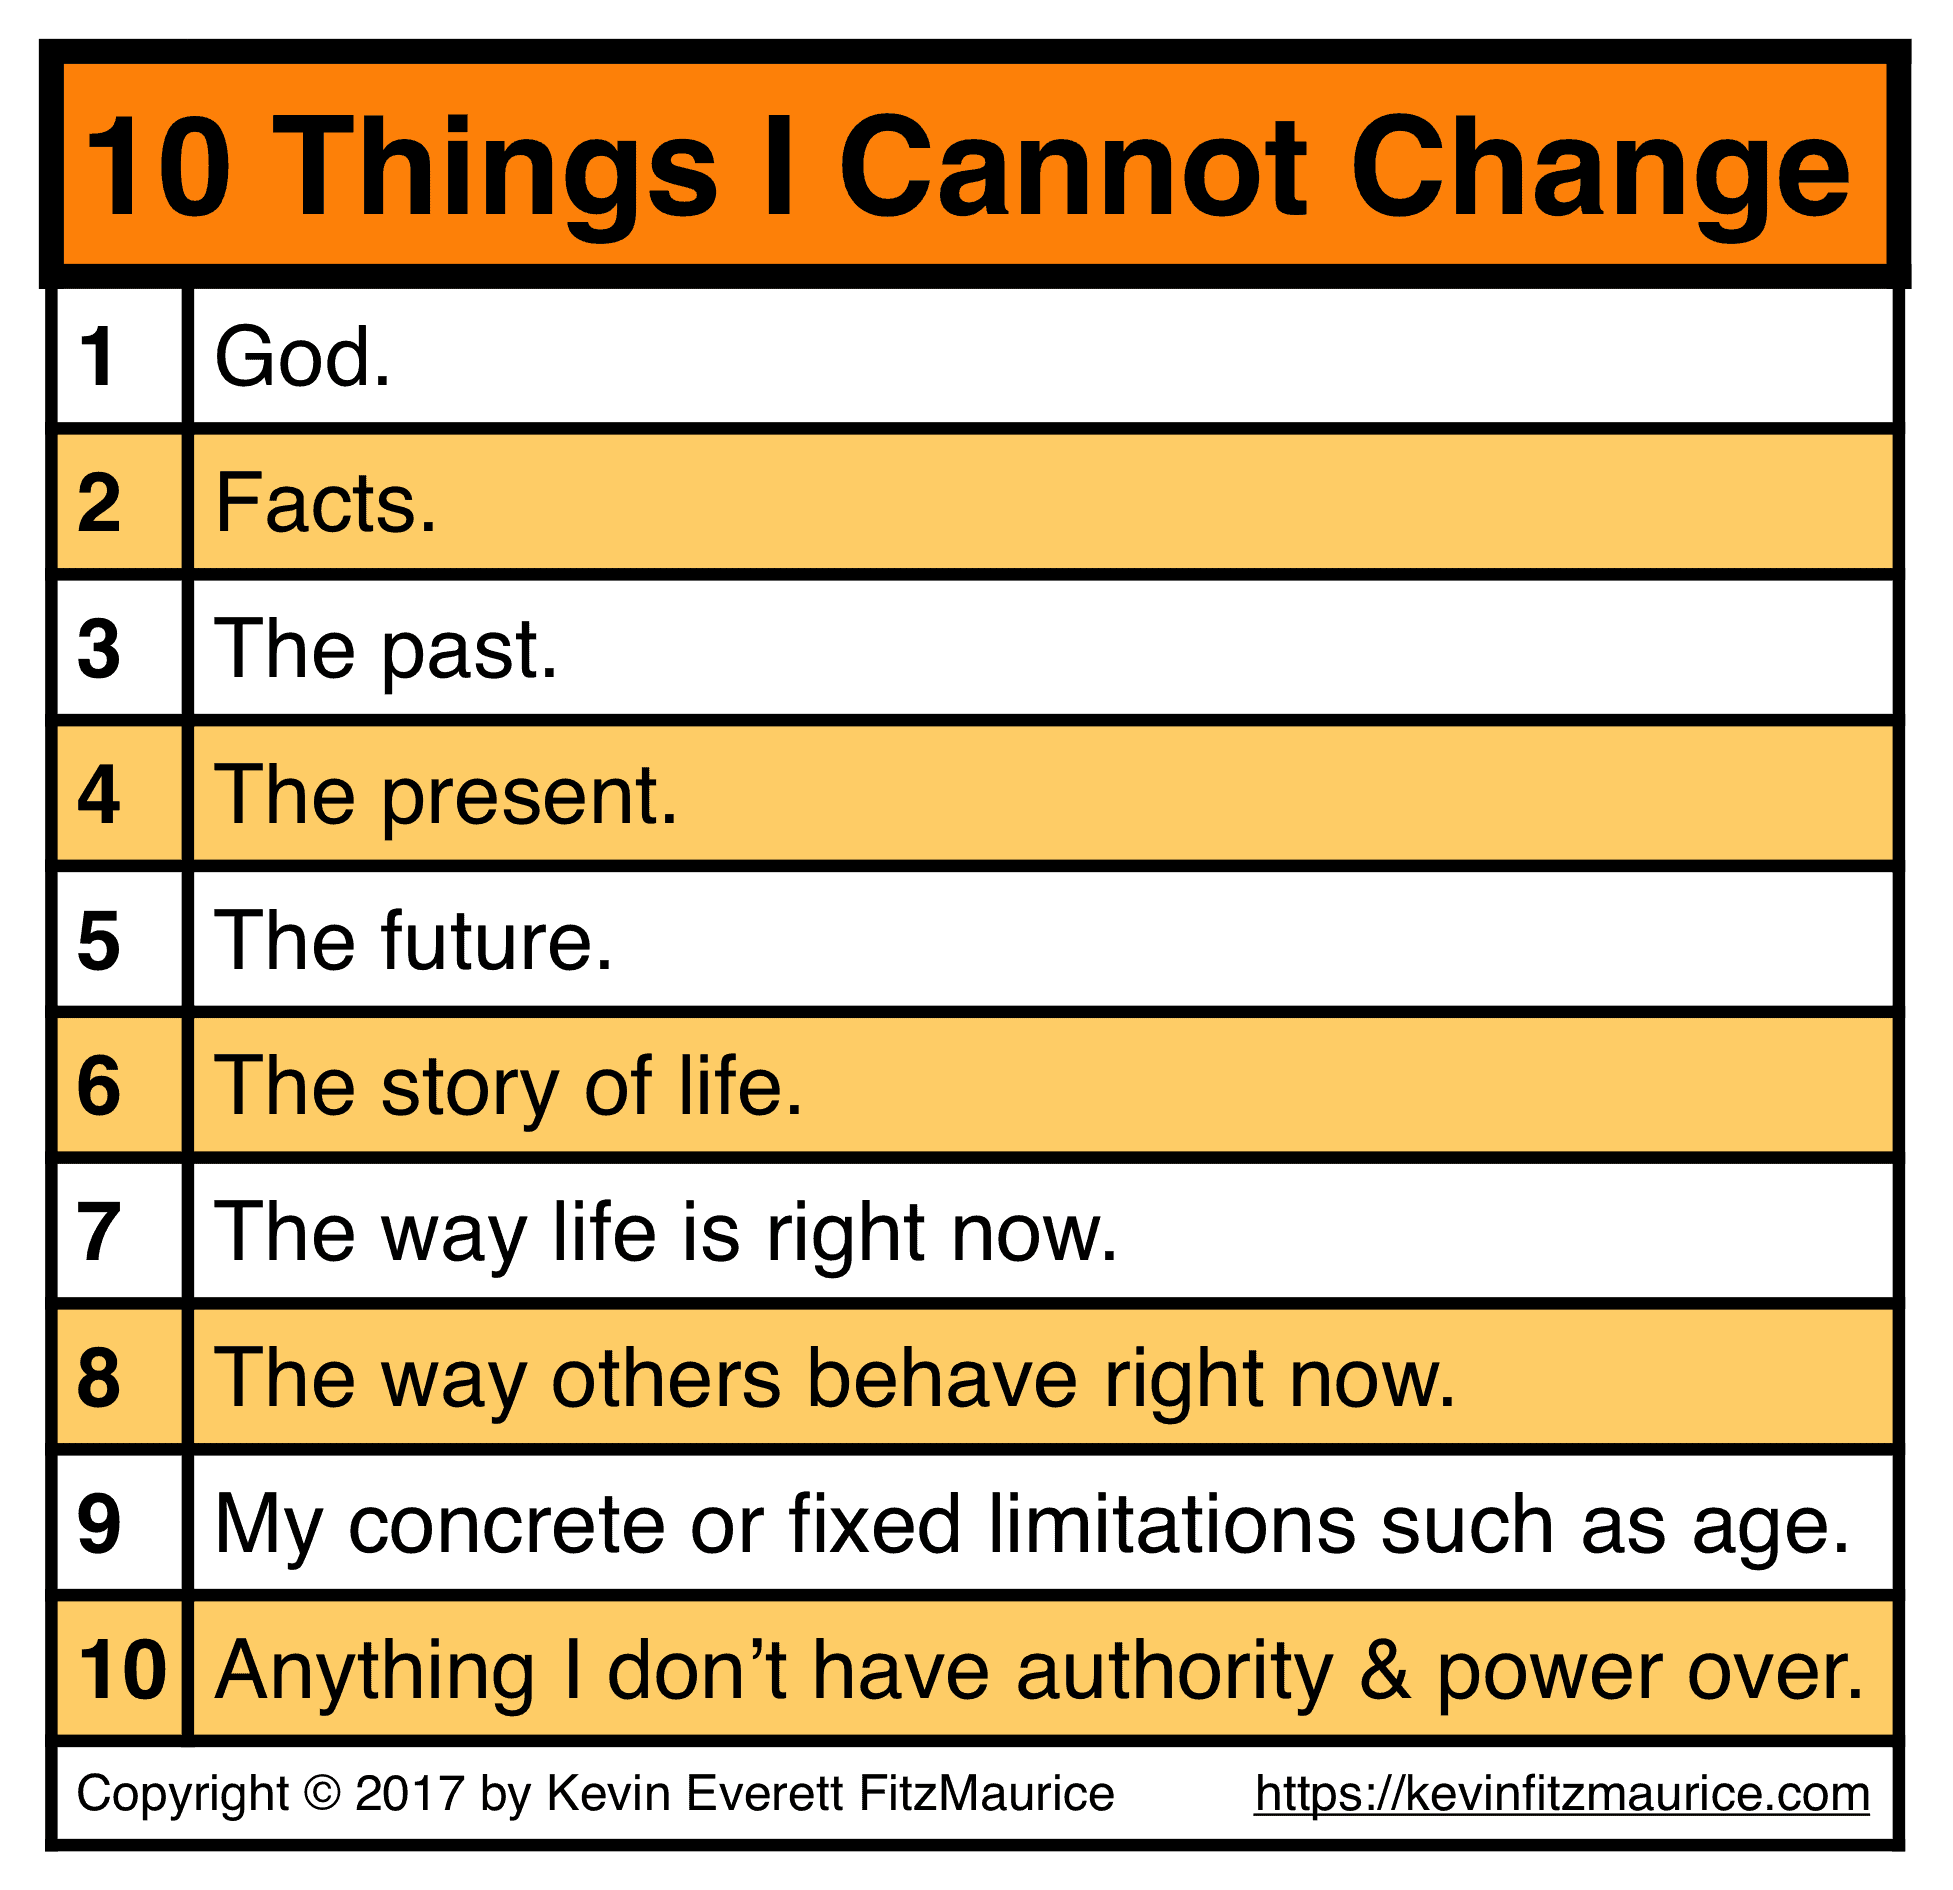 10 Things I Cannot Change